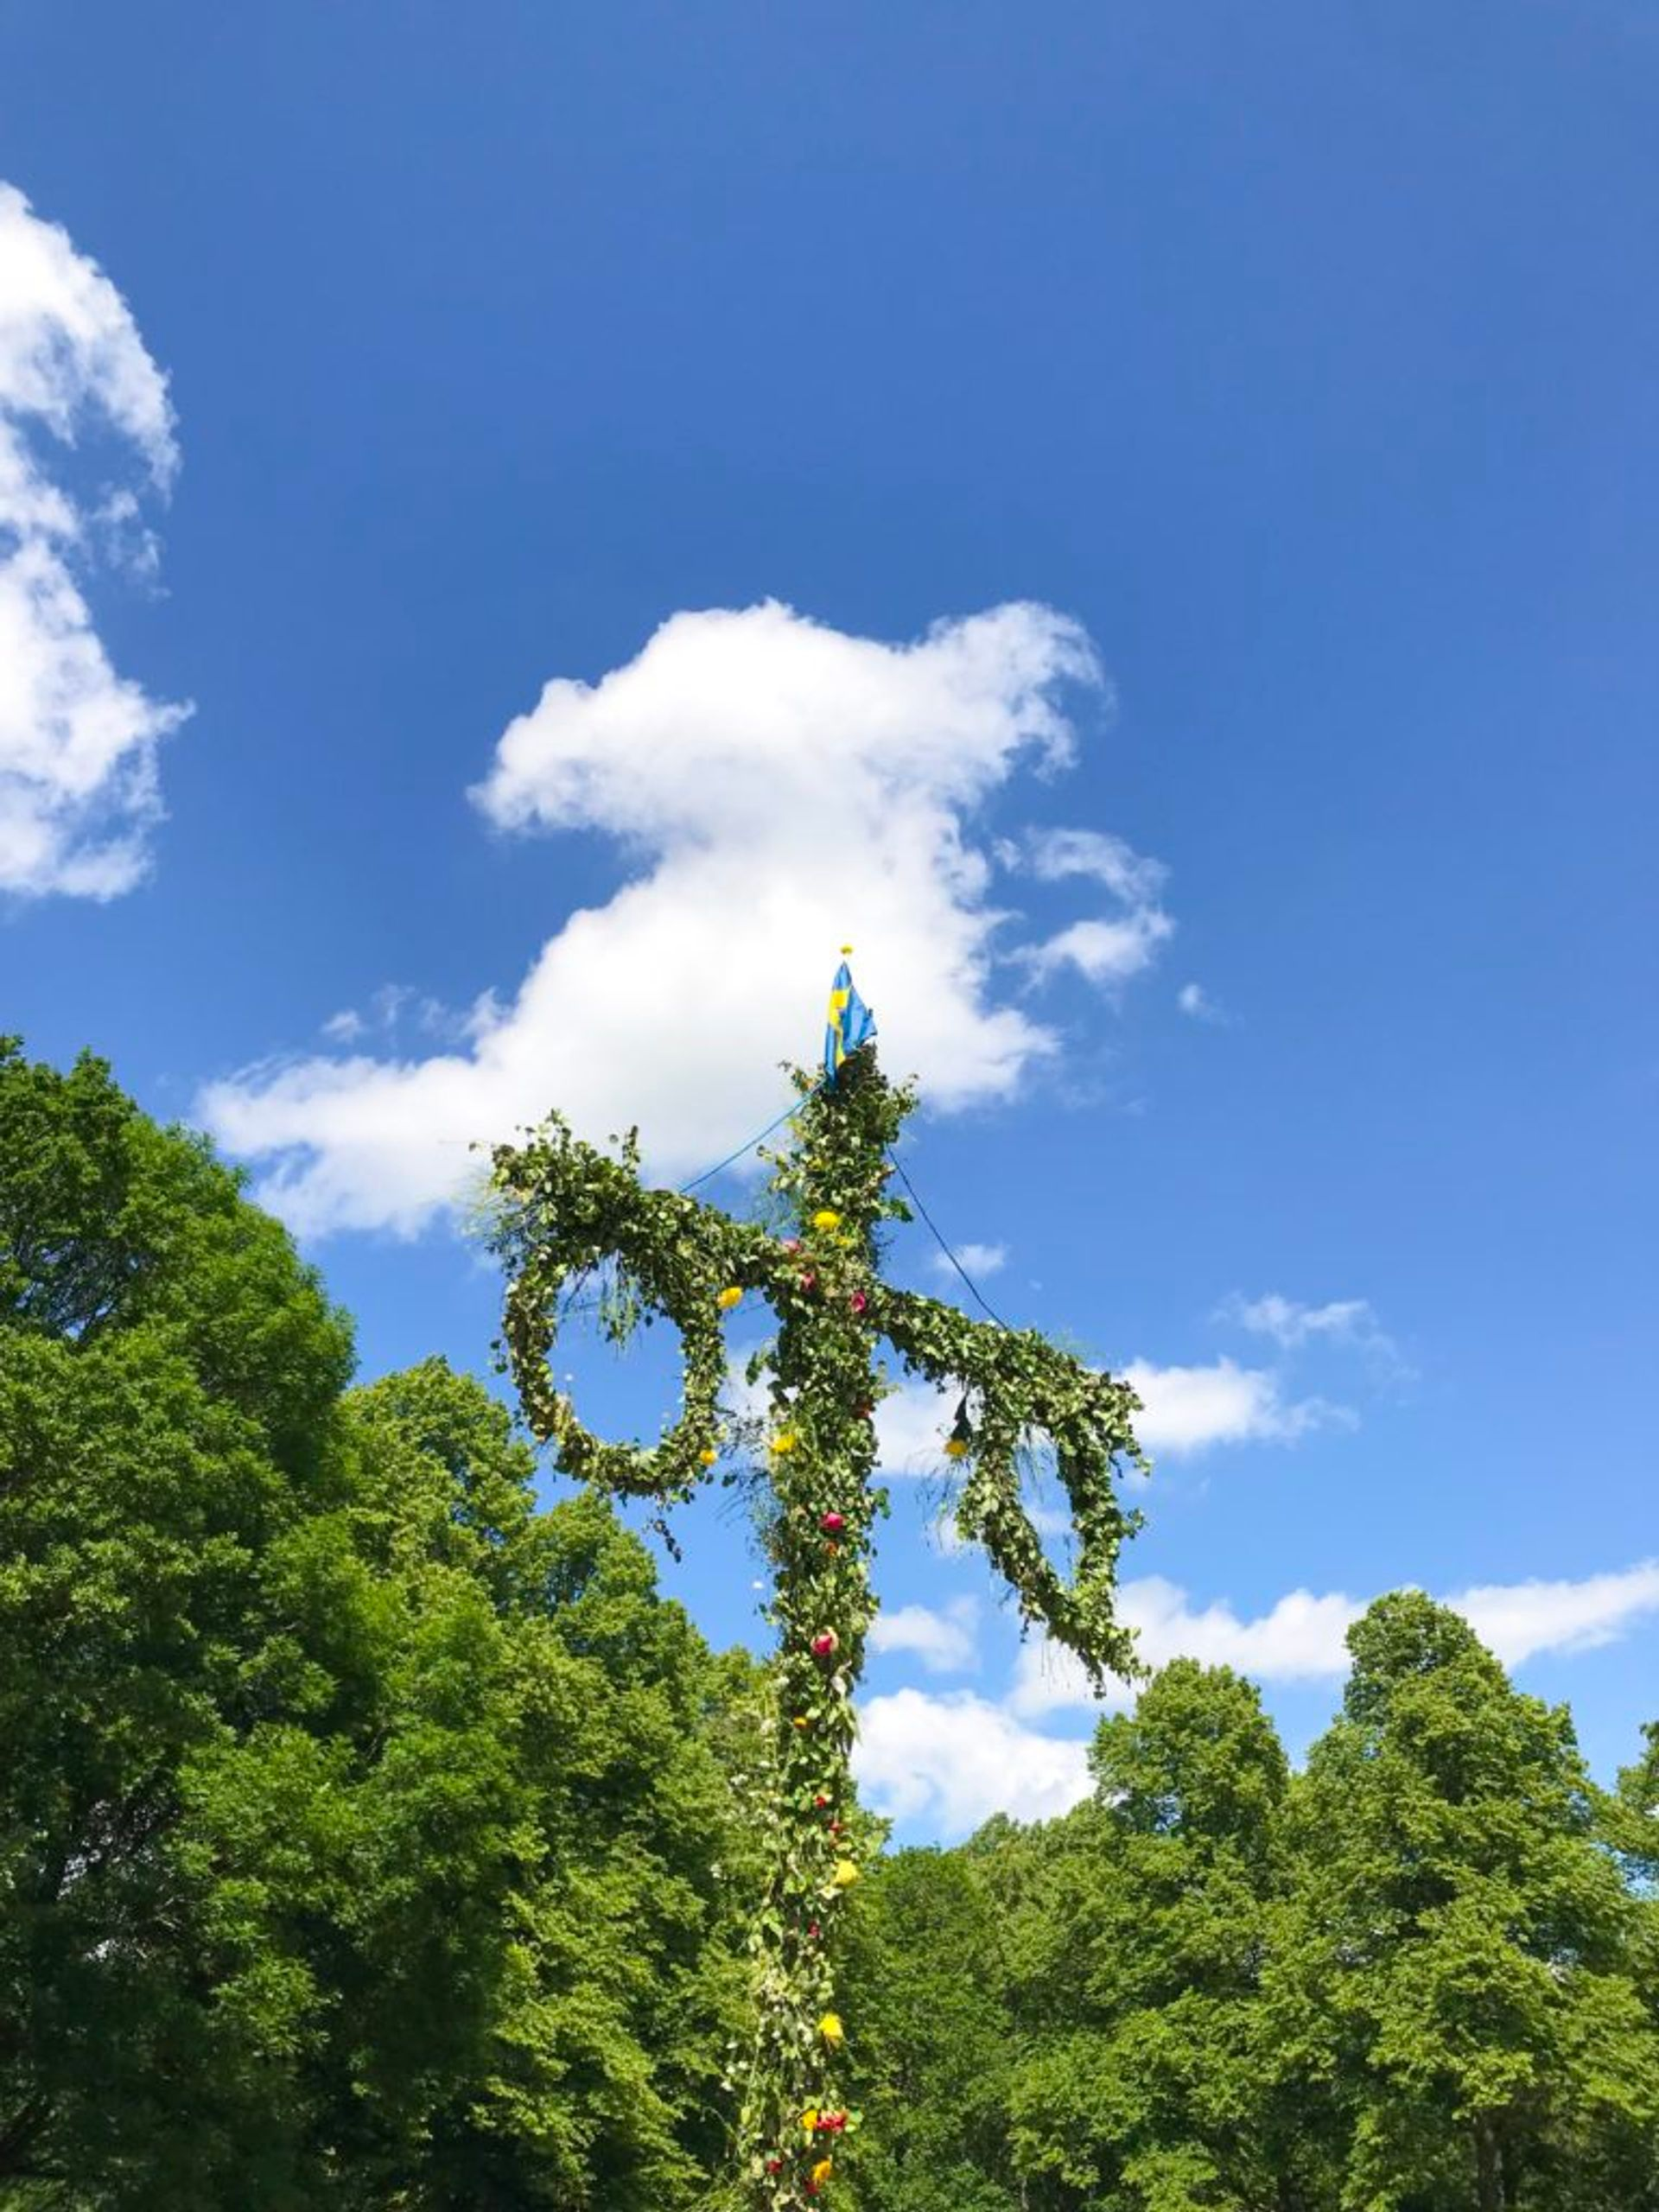 A traditional Midsummer maypole covered in leaves and flowers.